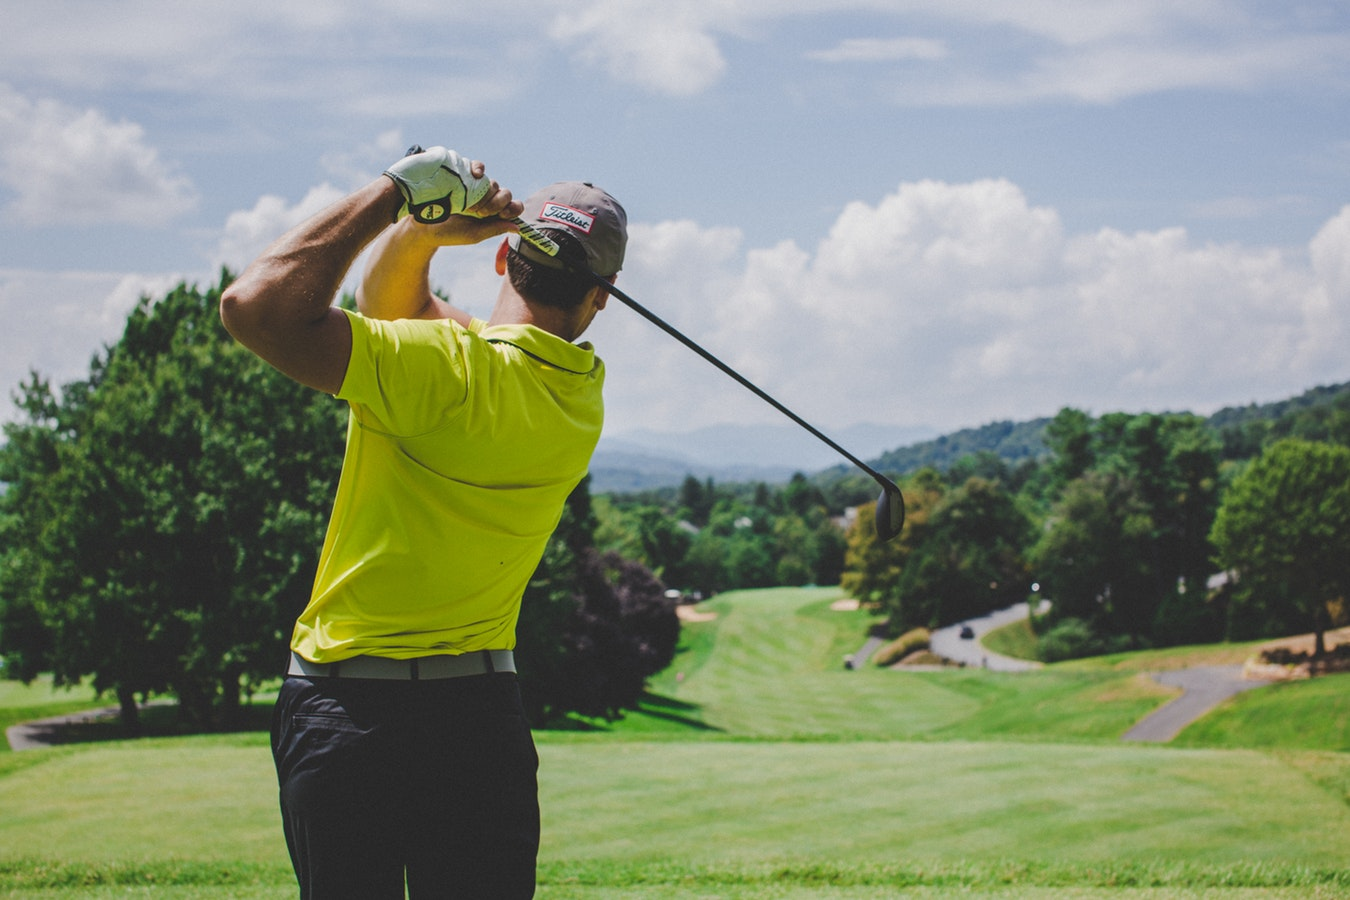 Enjoy Golfing? That Means You Are Also Enjoying These 4 Health Benefits